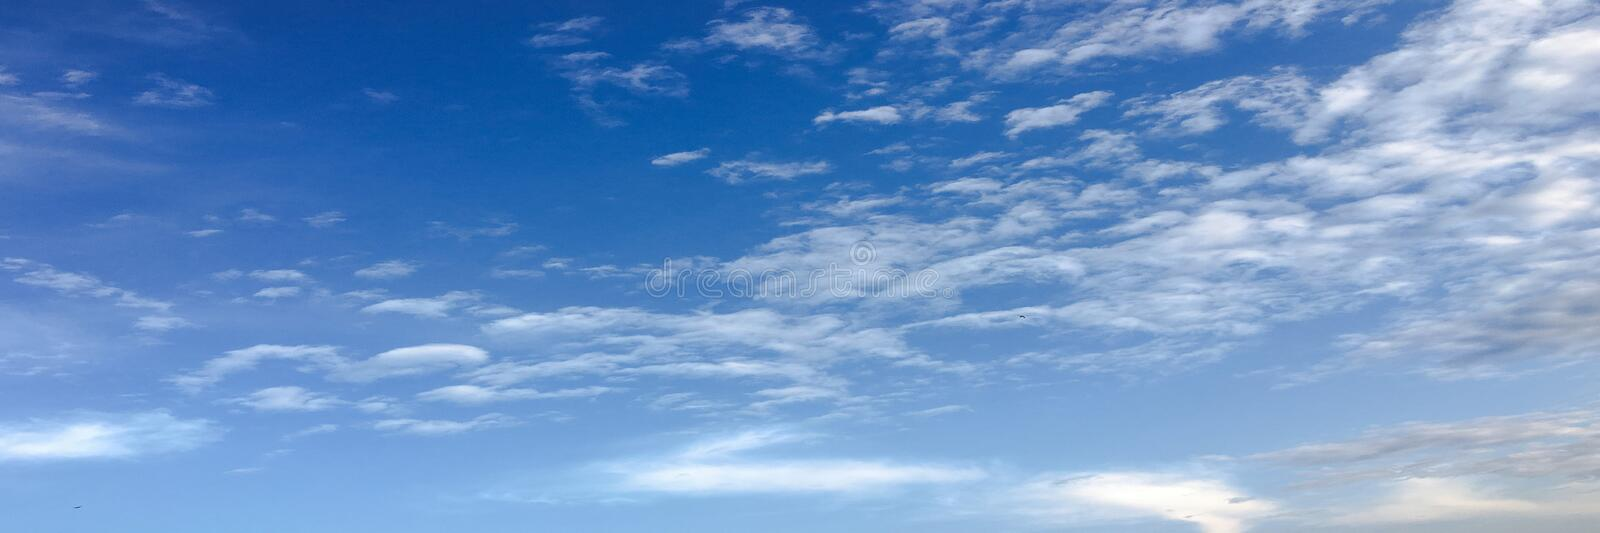 Beautiful clouds with blue sky background. Nature weather, cloud blue sky and sun. stock image